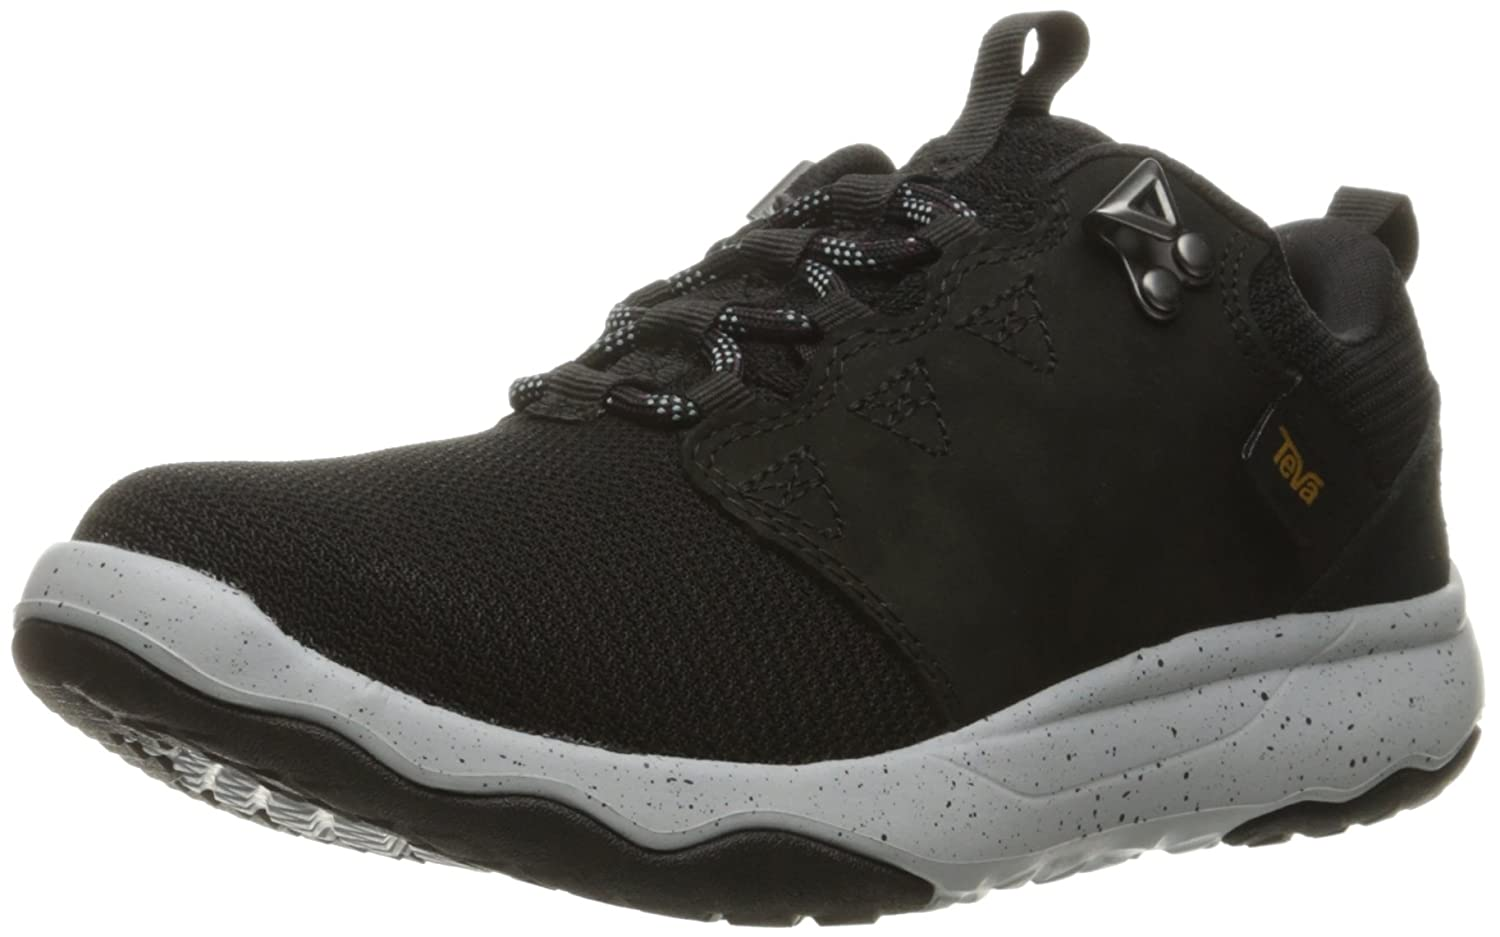 Teva Women's W Arrowood Waterproof Hiking Shoe B018SA2U2E 5.5 B(M) US|Black